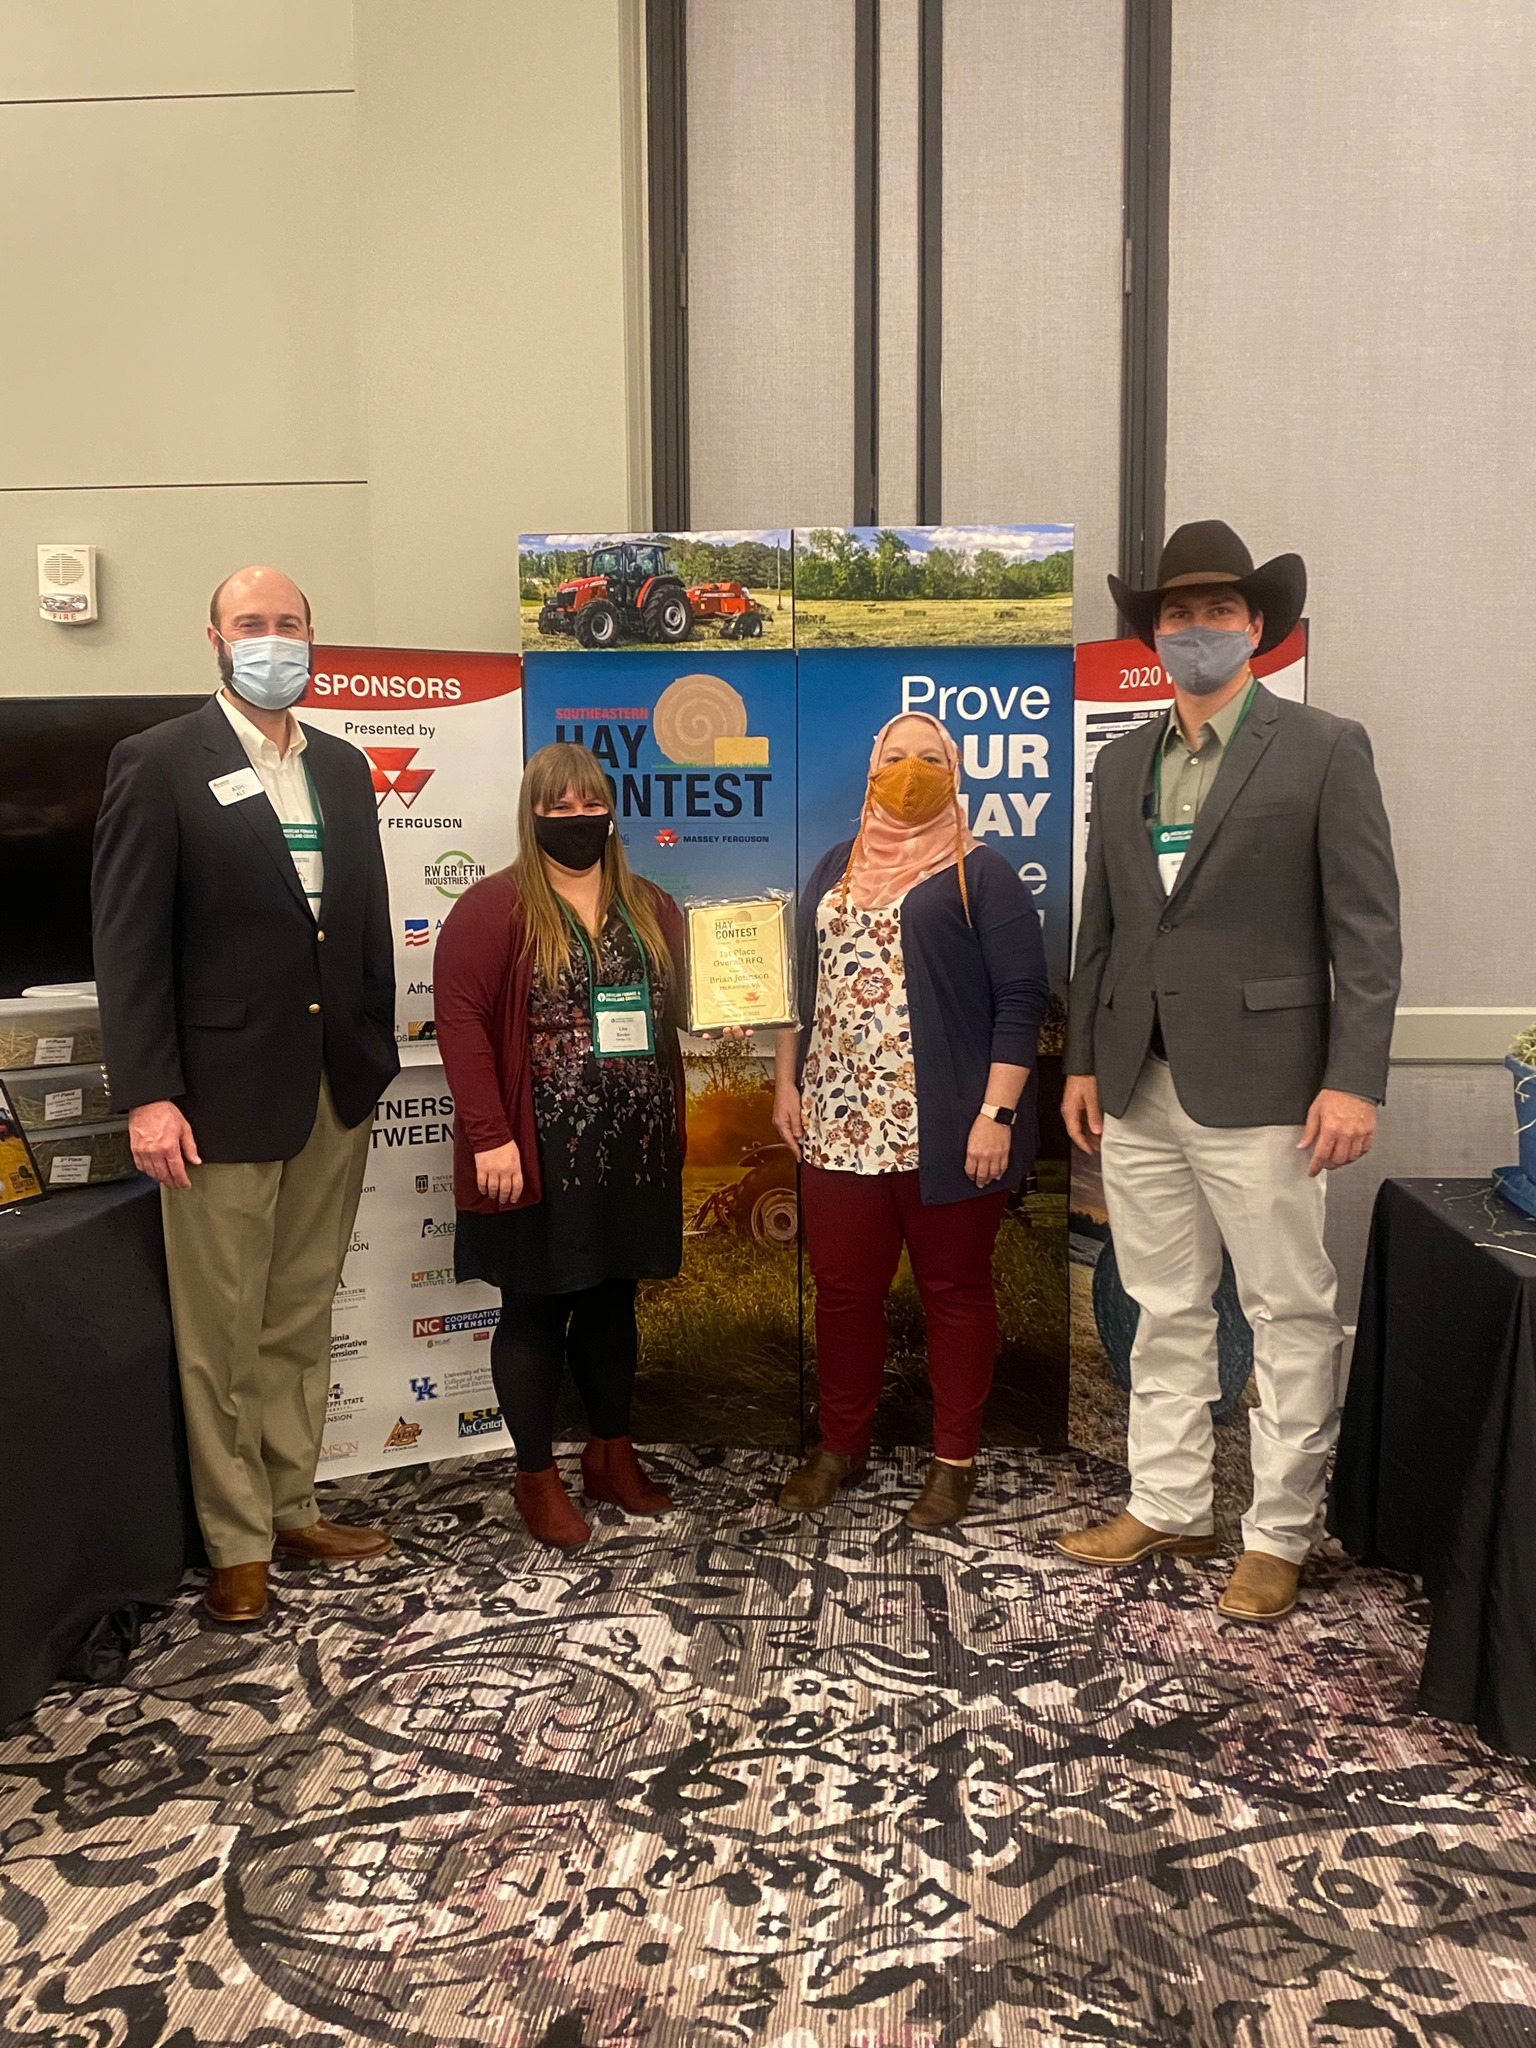 The 2020 Southeastern Hay Contest grand prize was awarded to Brian Johnson of McKenney, Virginia, for his alfalfa hay sample (not pictured). Pictured from left to right are Ash Alt, Massey Ferguson Field Execution Manager; Lisa Baxter, UGA Forage Extension Specialist; Leanne Dillard, Auburn University Forage Extension Specialist; and Marcelo Wallau, UF Forage Extension Specialist.